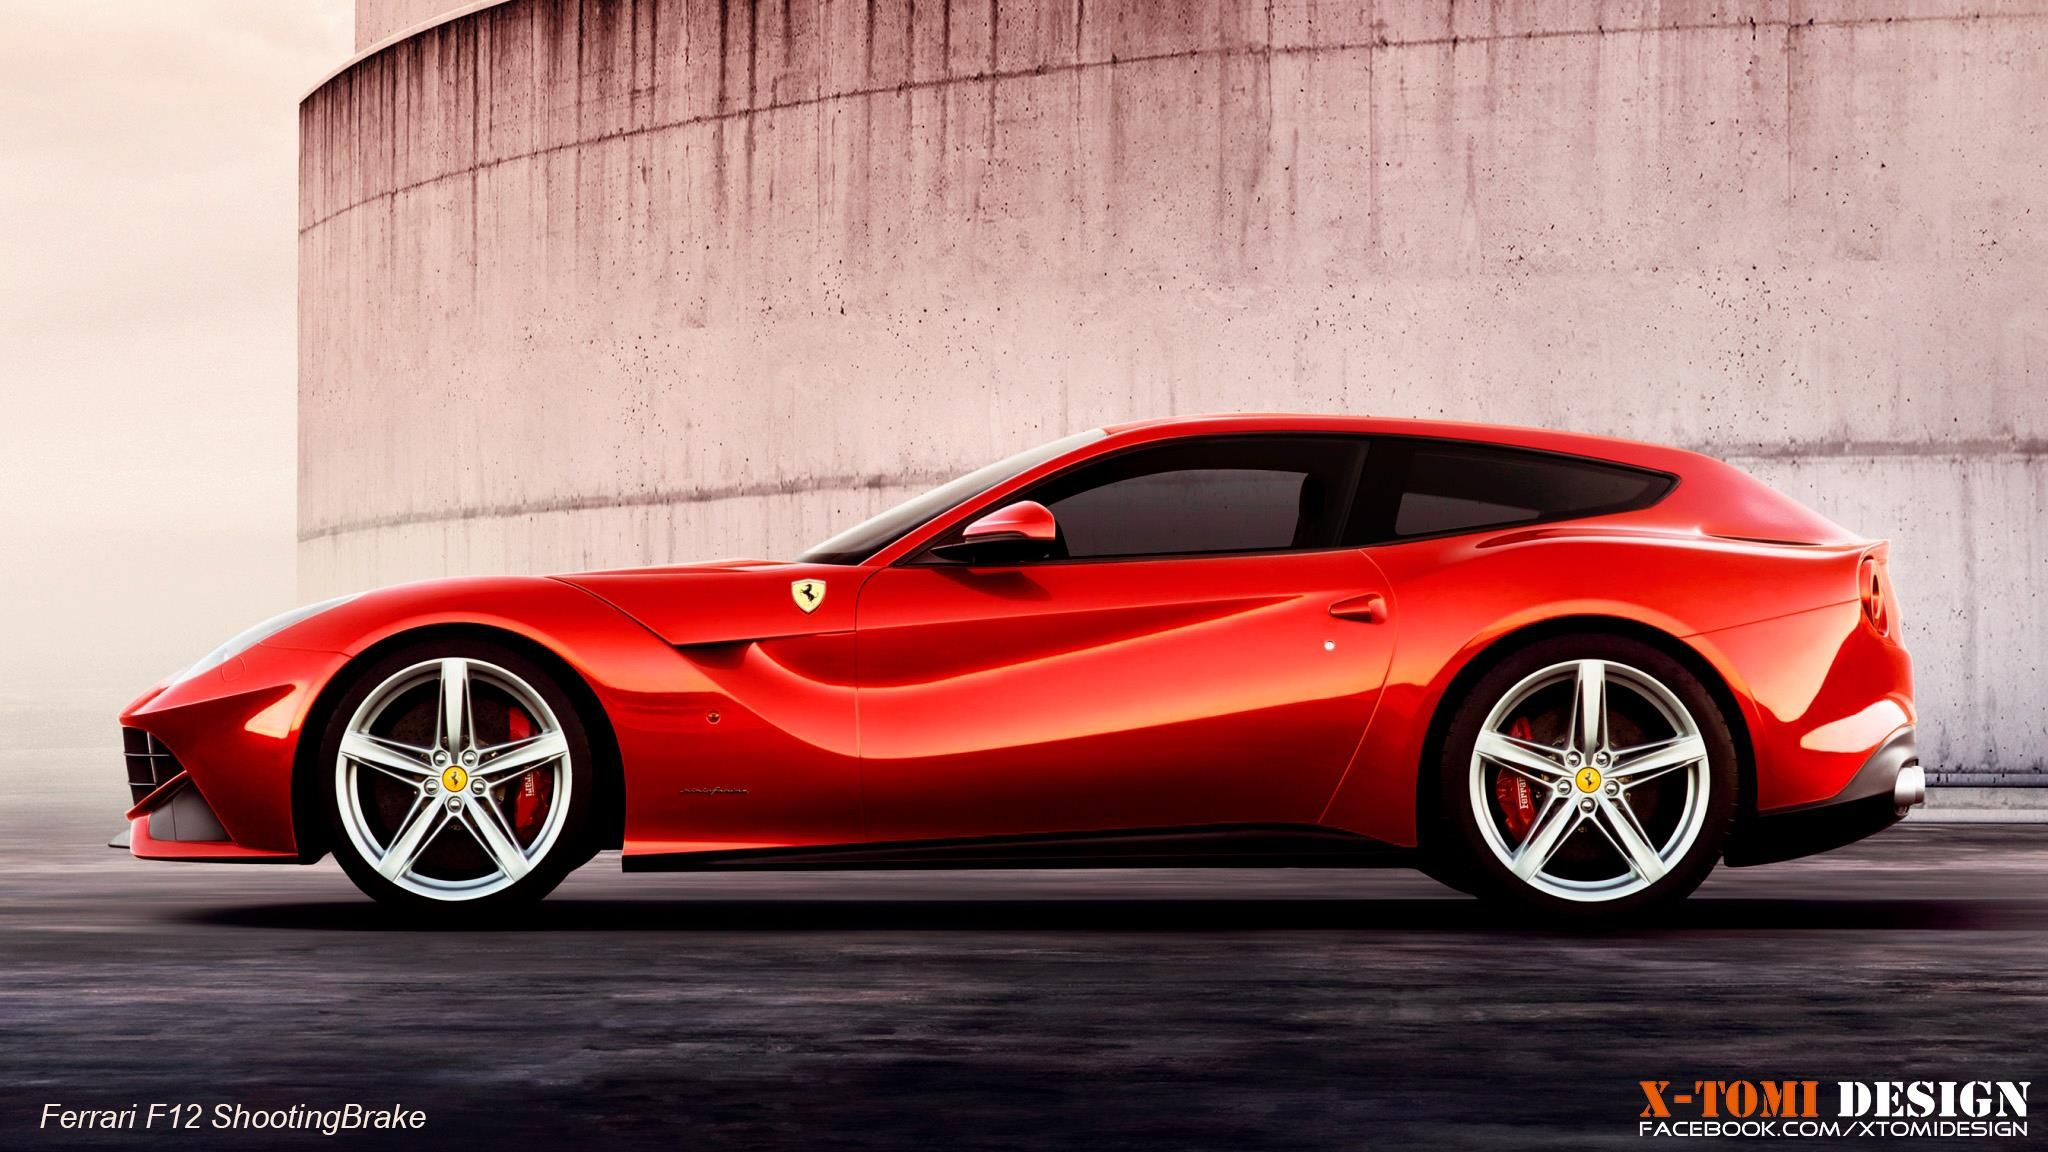 Ferrari F12 Shooting Brake With Images Ferrari F12berlinetta